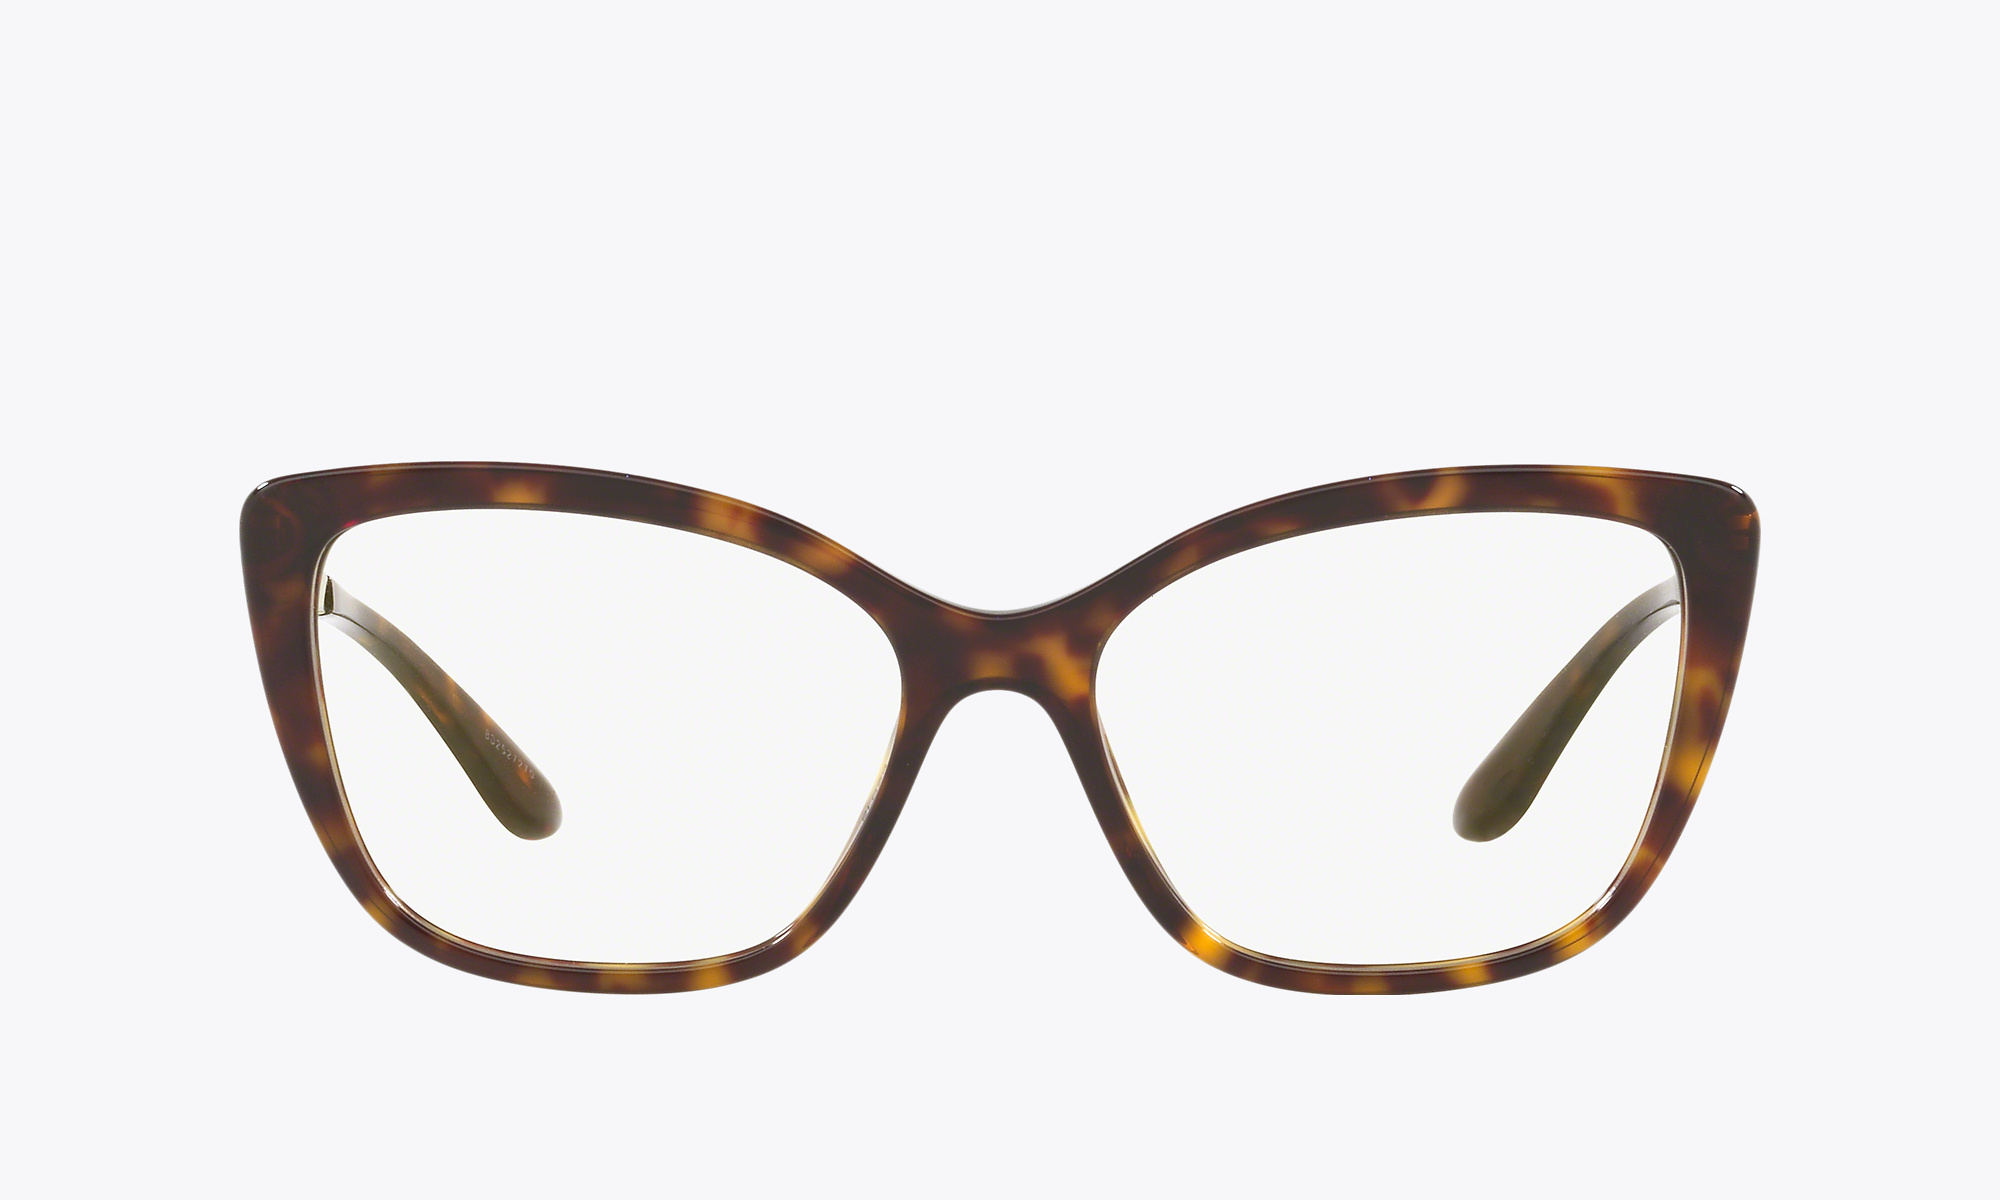 Image of Dolce & Gabbana DG3280 color Tortoise